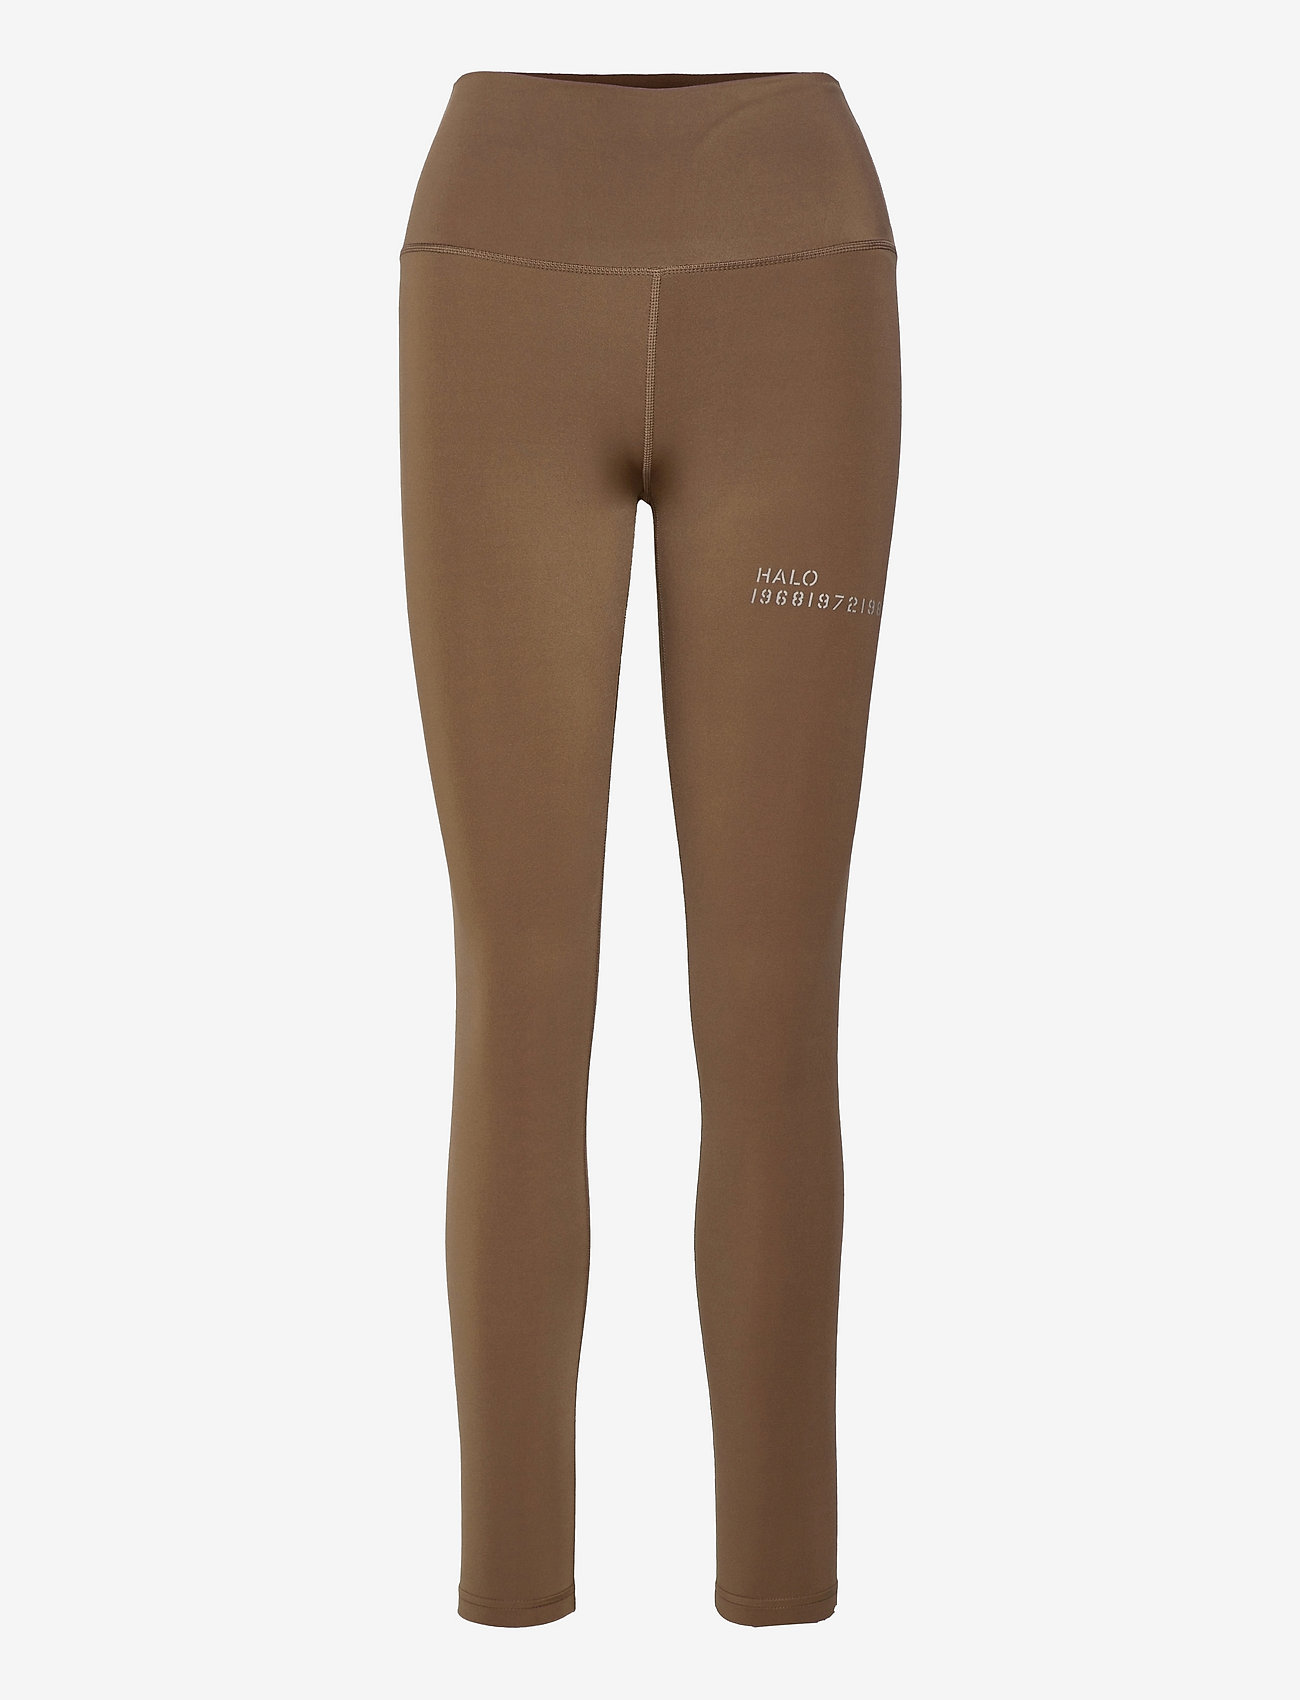 HALO - HALO WOMENS HIGHRISE TIGHTS - tights & shorts - vintage brown - 1